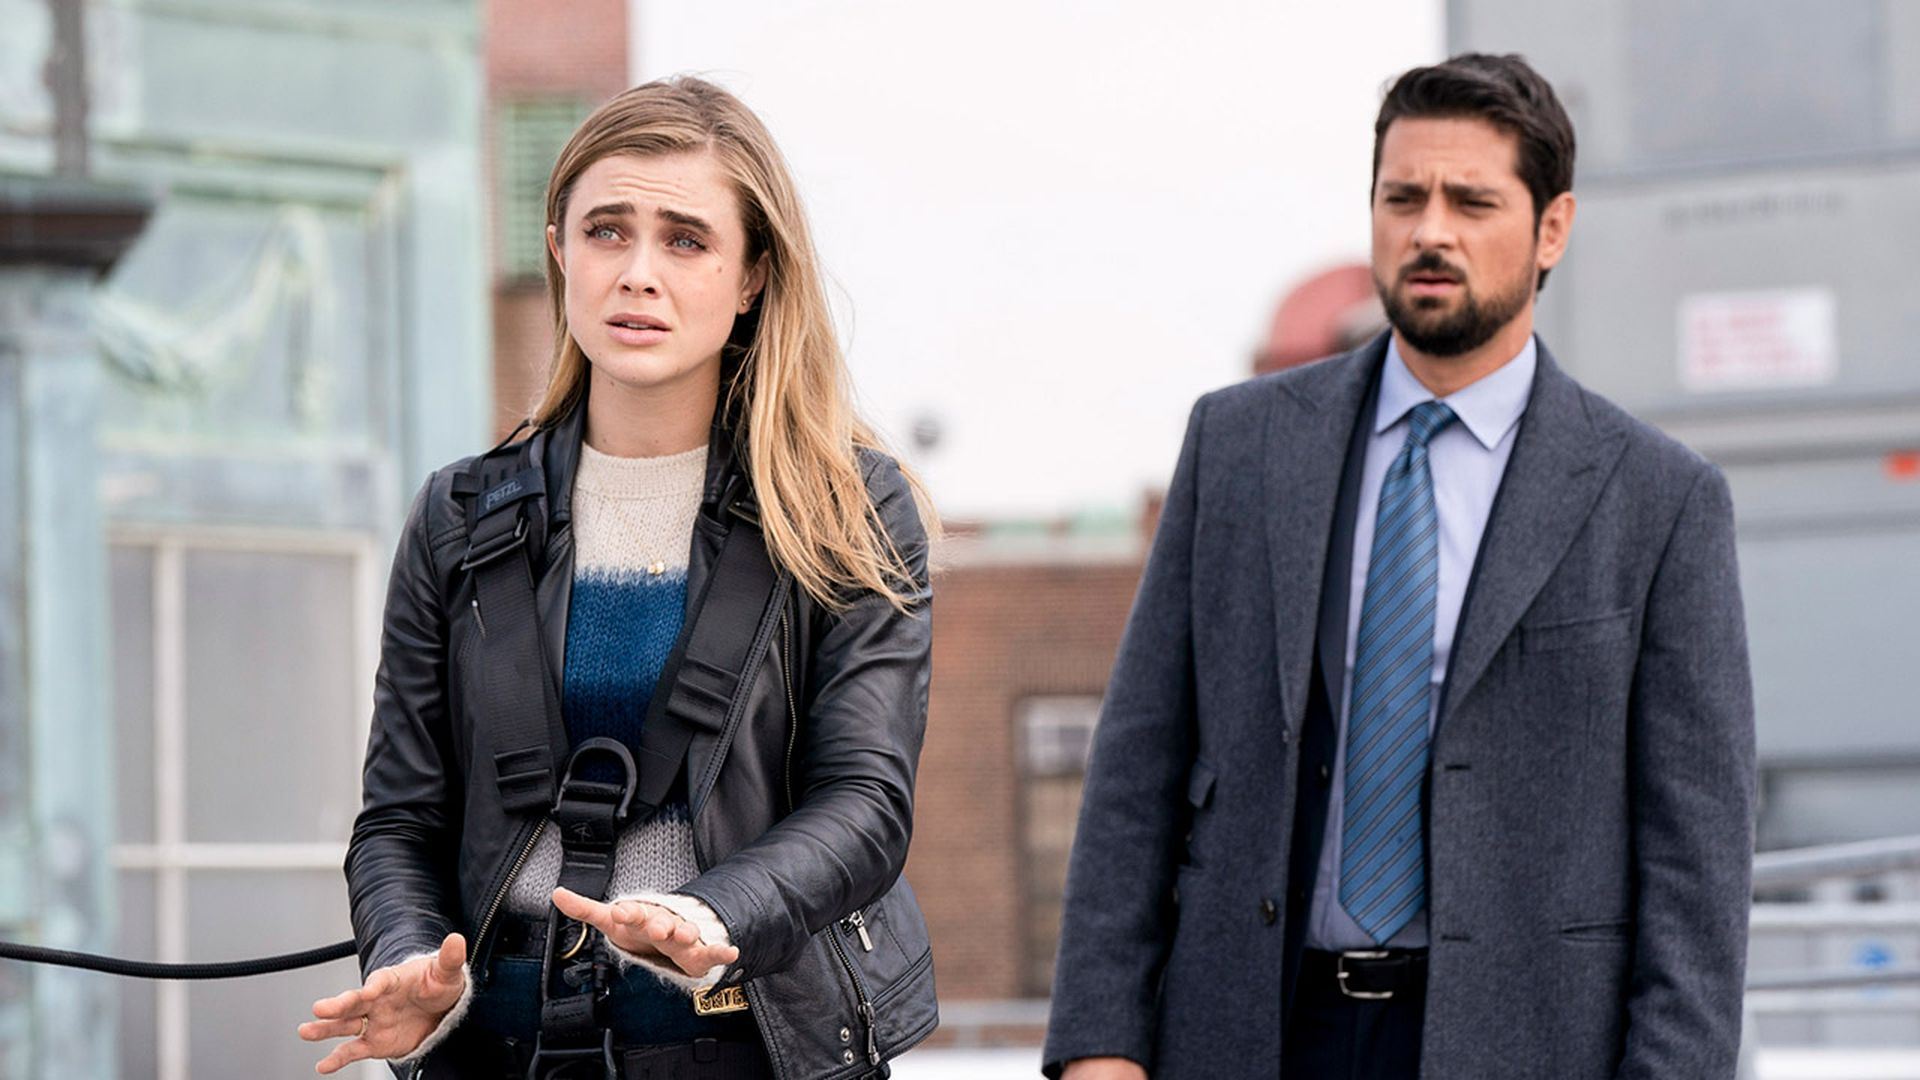 Bring Home to First Season of Manifest on July 23rd